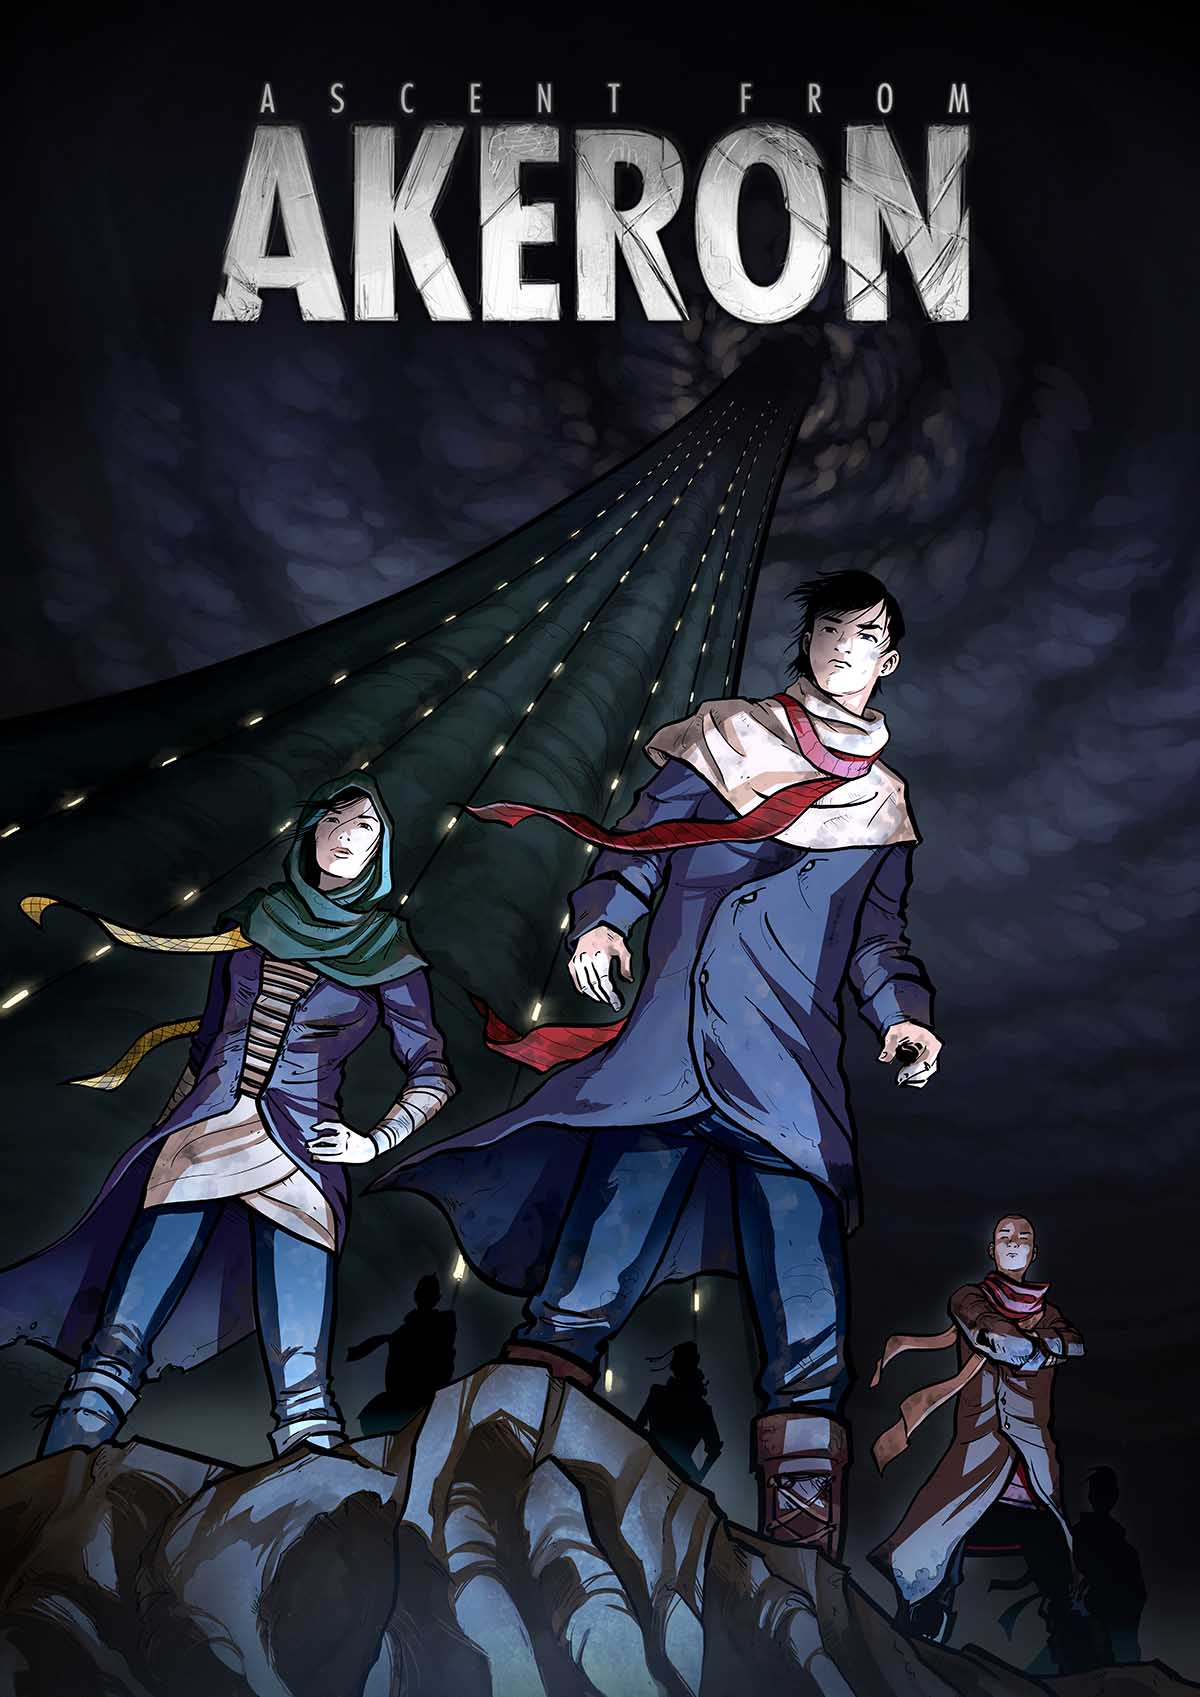 Ascent from Akeron interactive motion comic - Screendiver